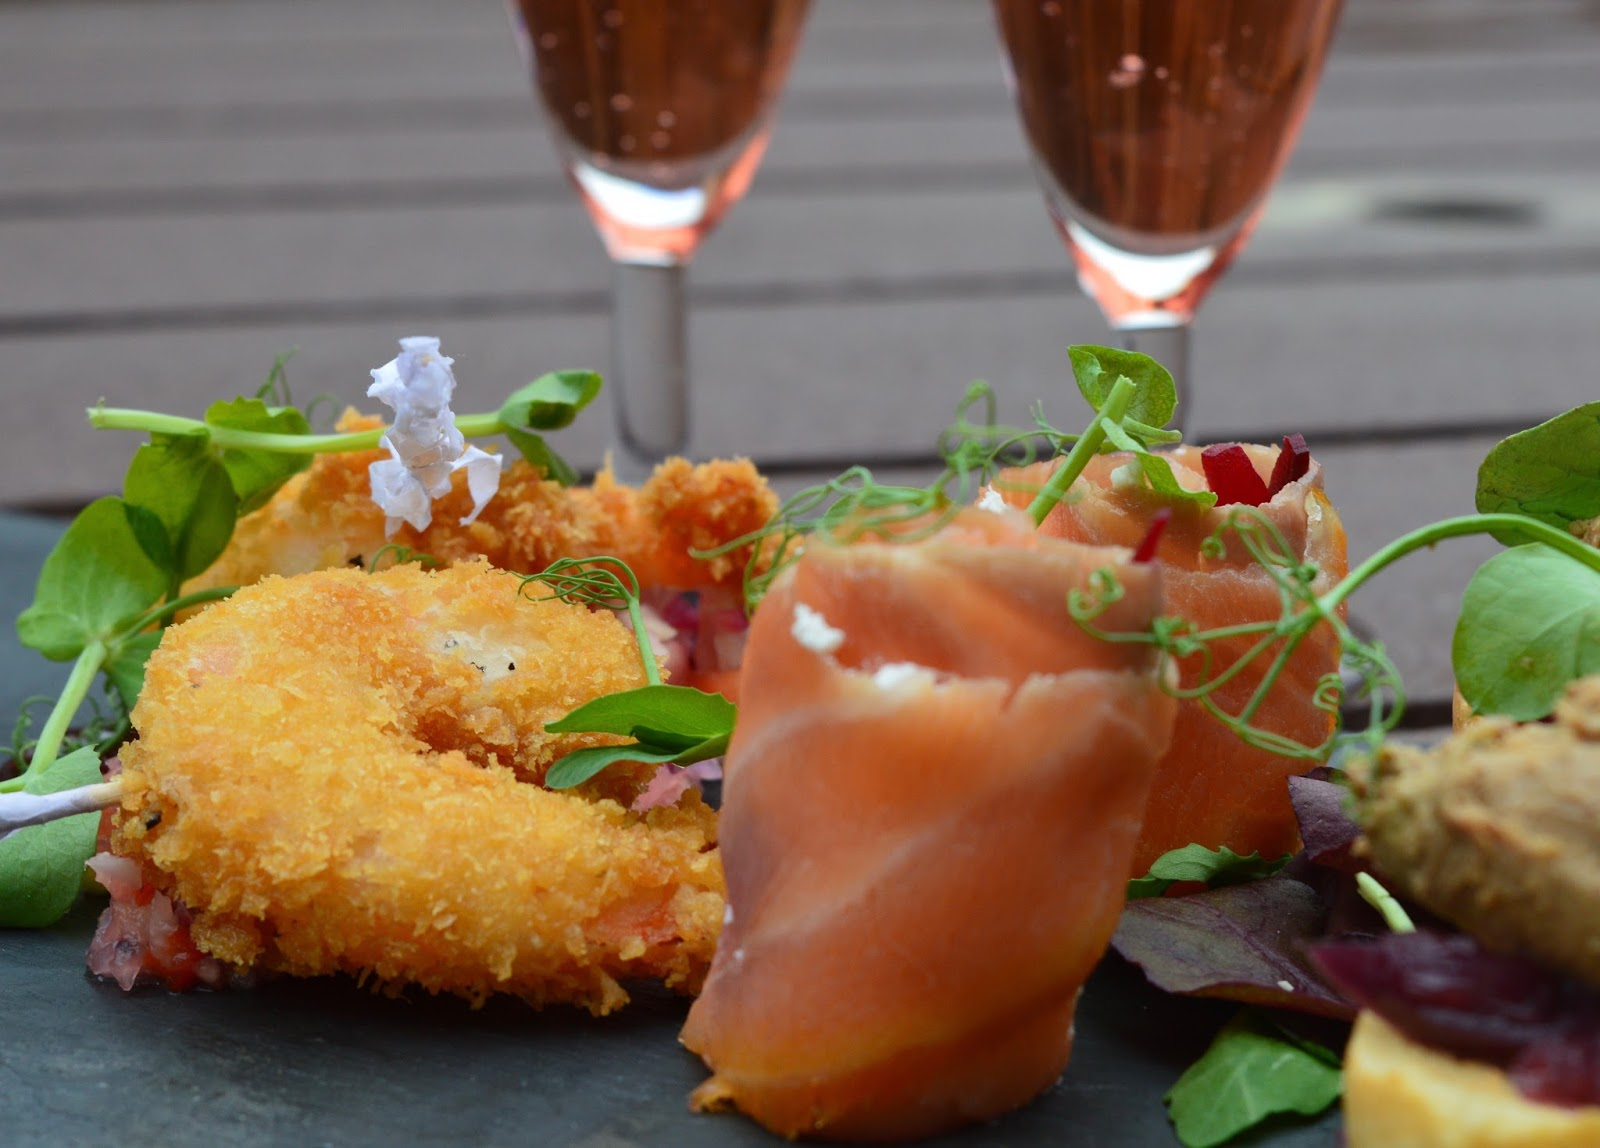 Overnight Stay at South Causey Inn | County Durham - Complimentary champagne and canapes